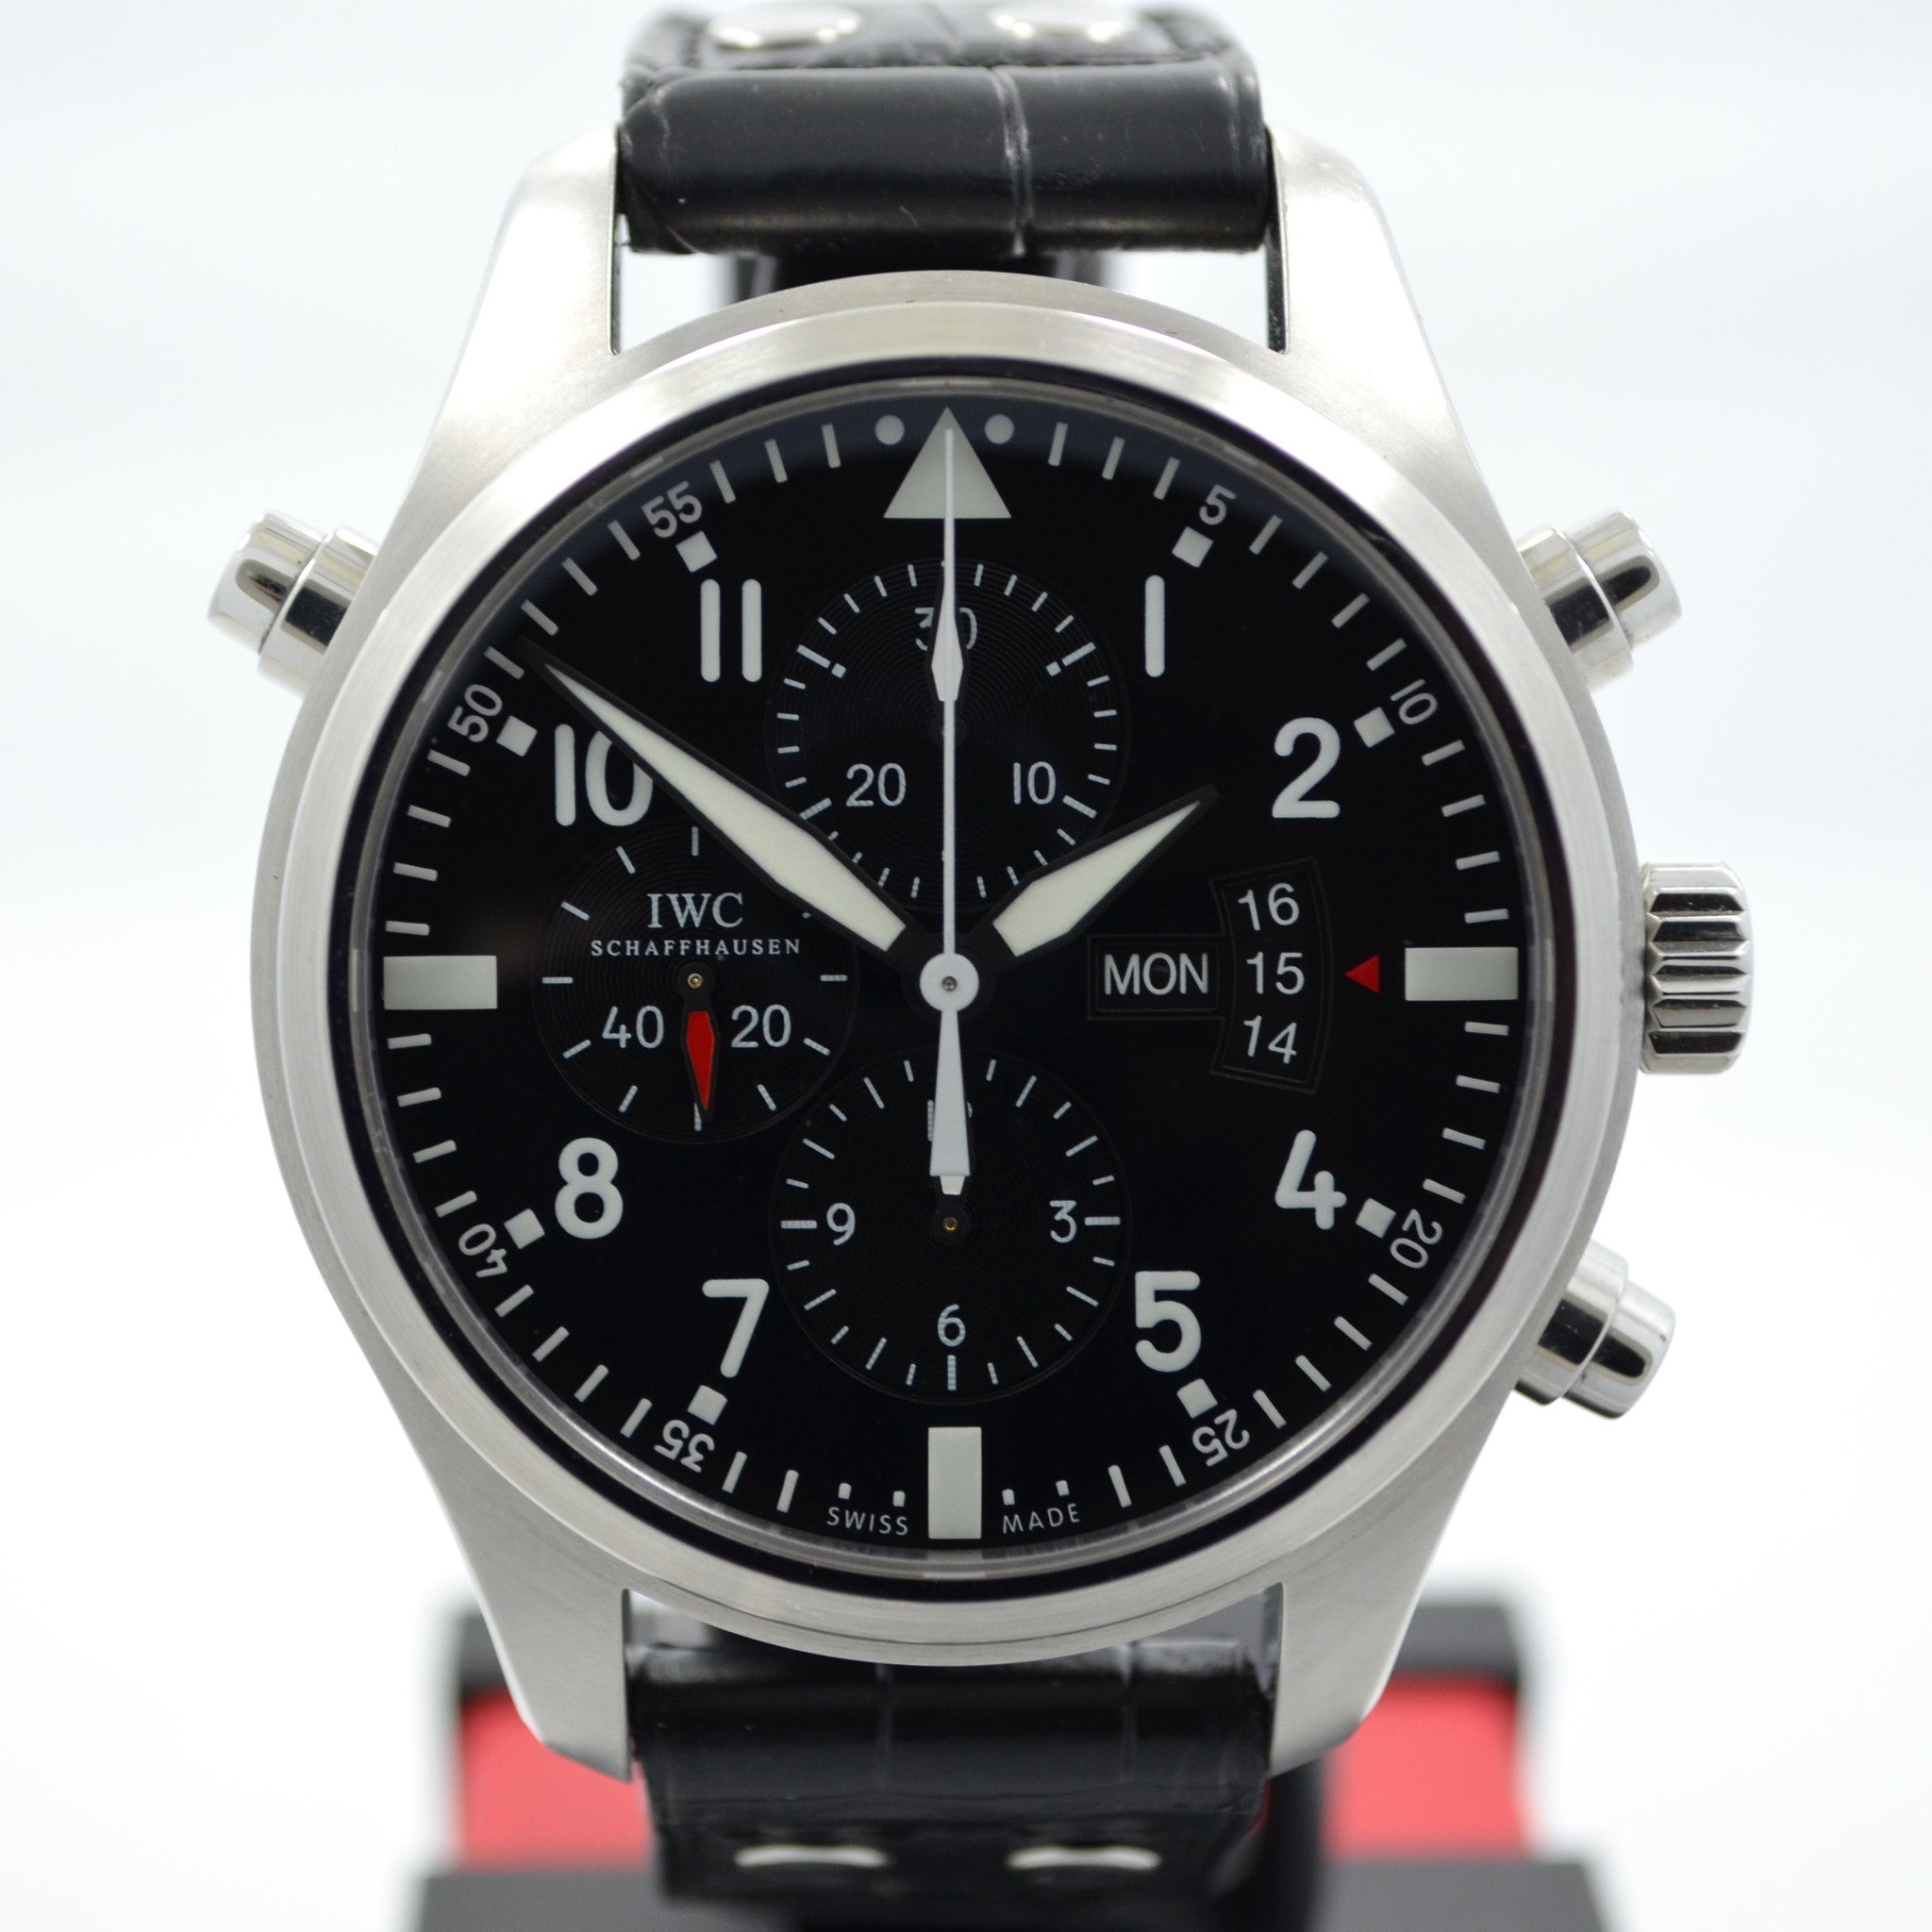 IWC Pilots Double Chronograph IW377801 Stainless Steel Black Dial 46mm Watch - Hashtag Watch Company